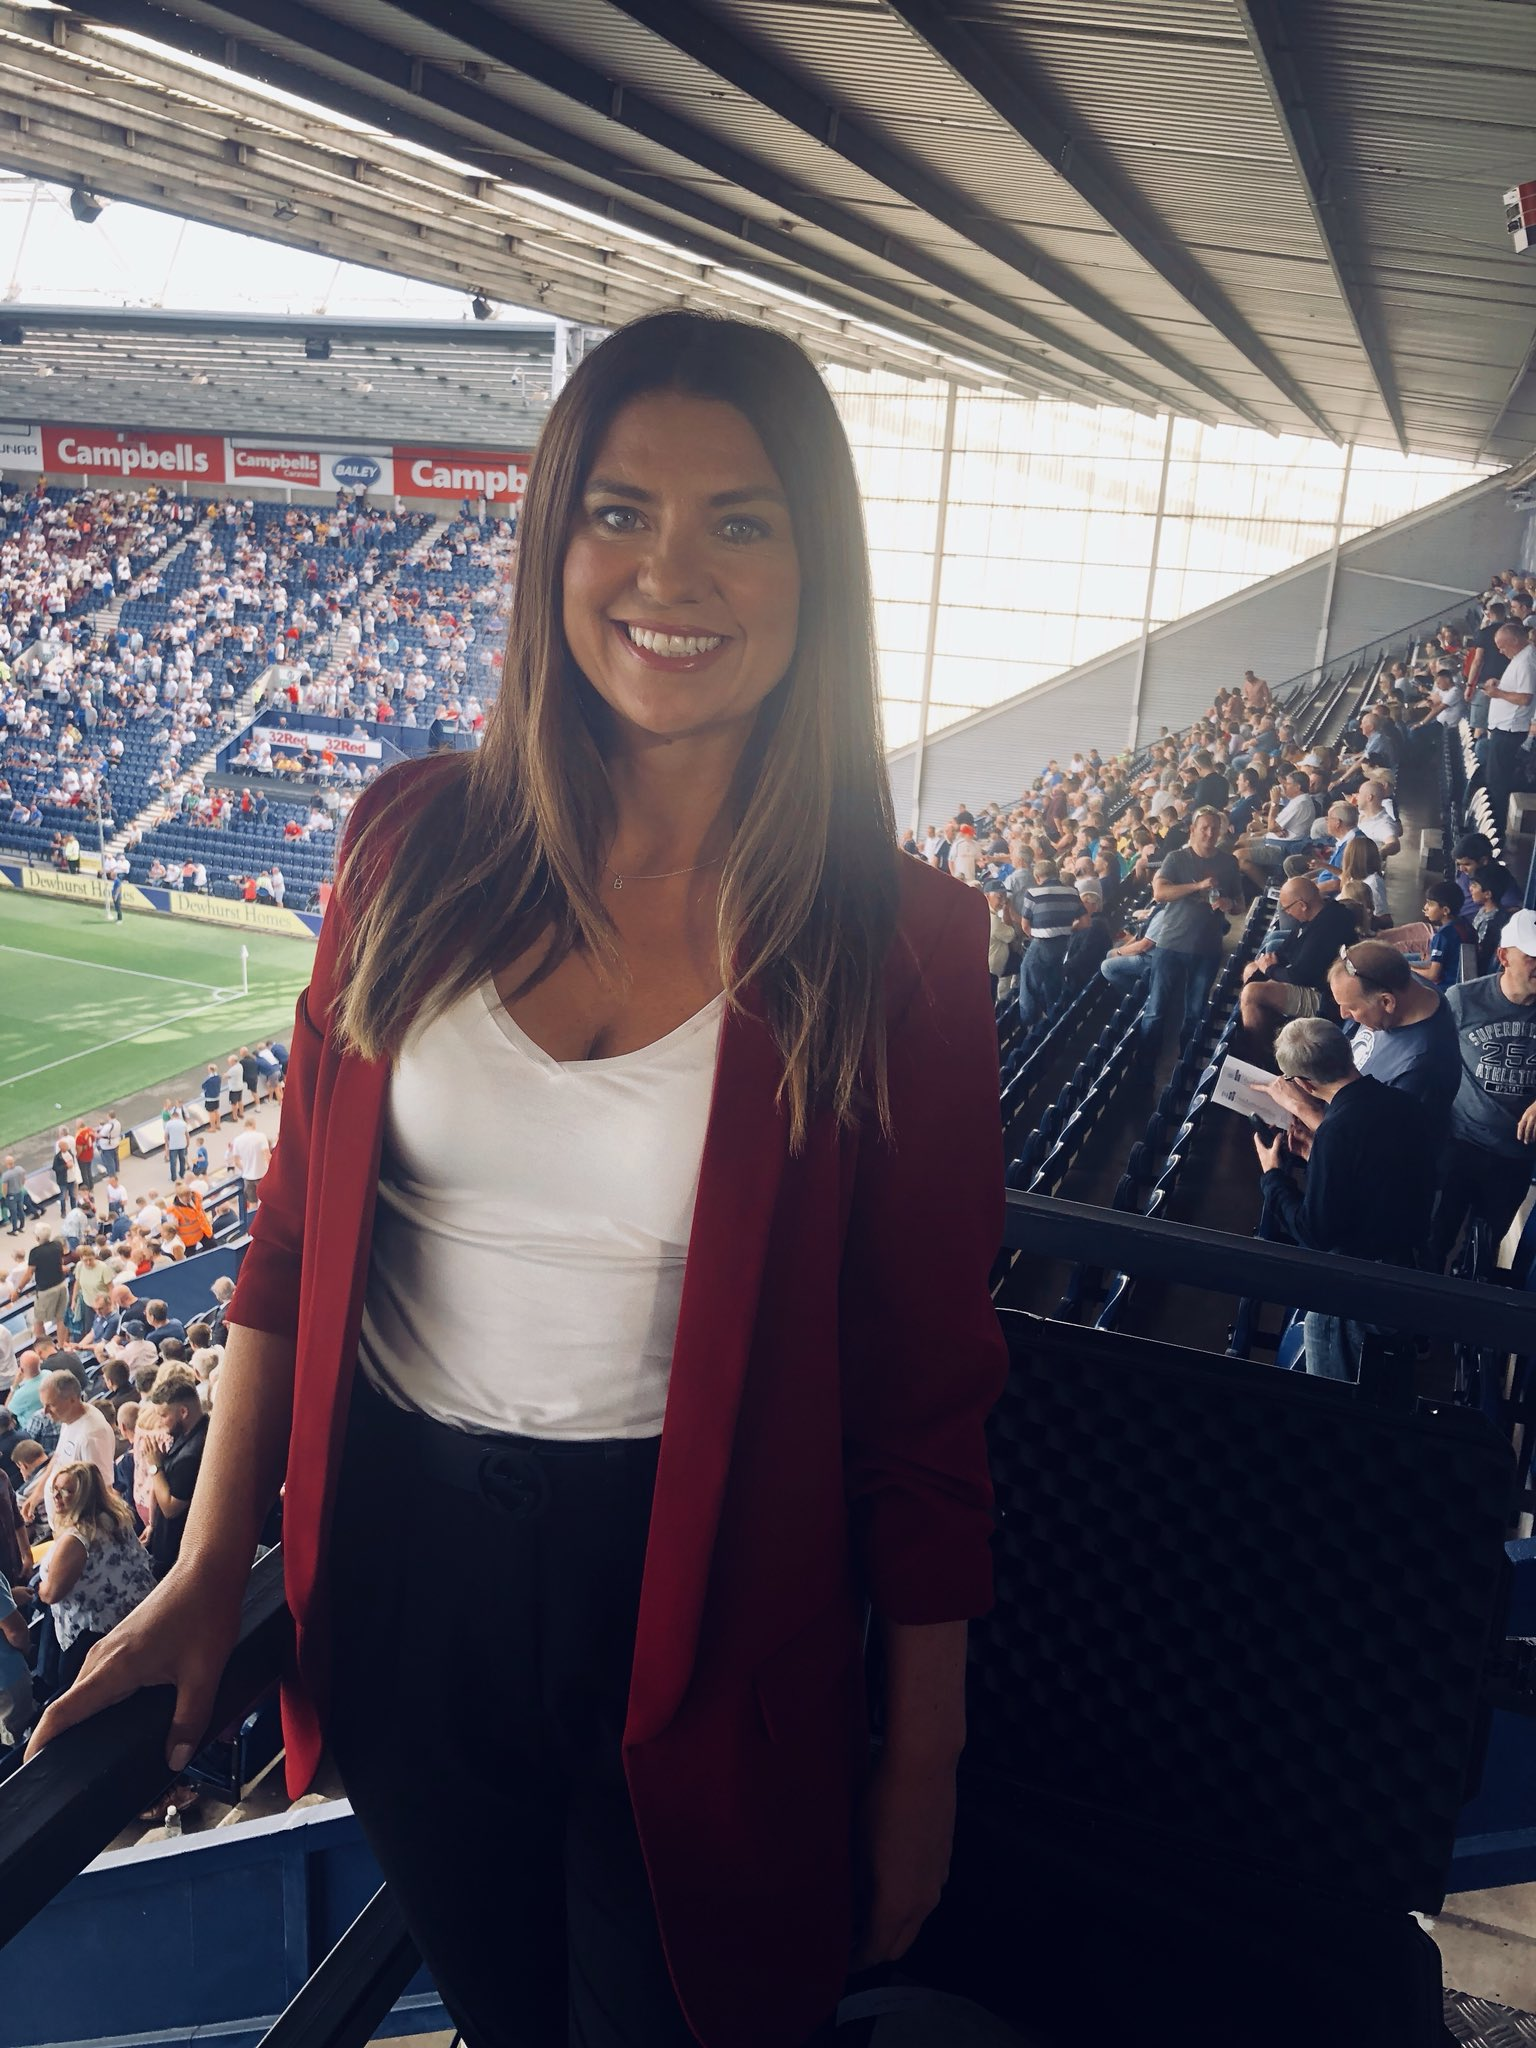 Bianca Westwood on Twitter: Here we go back in the gantry